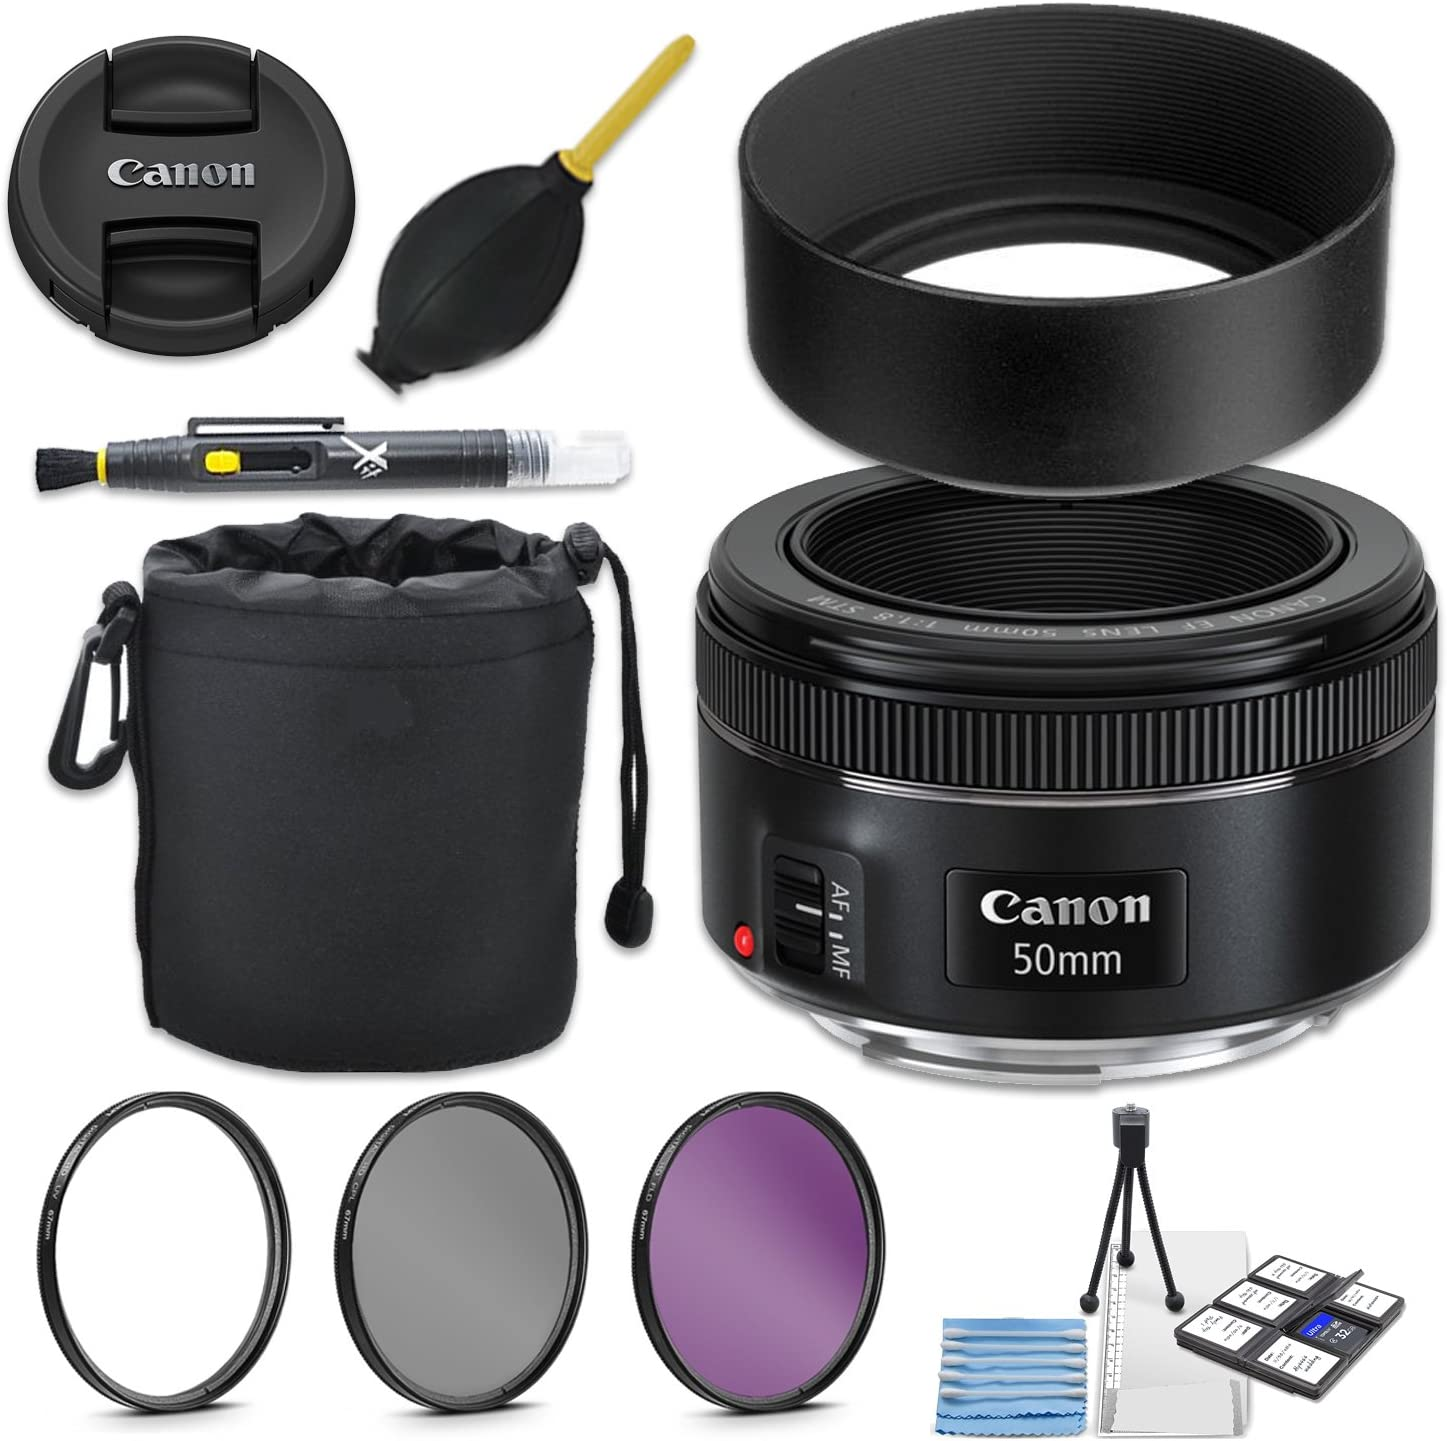 Lens Carrying Pouch Canon 50mm 1.8 II Lens